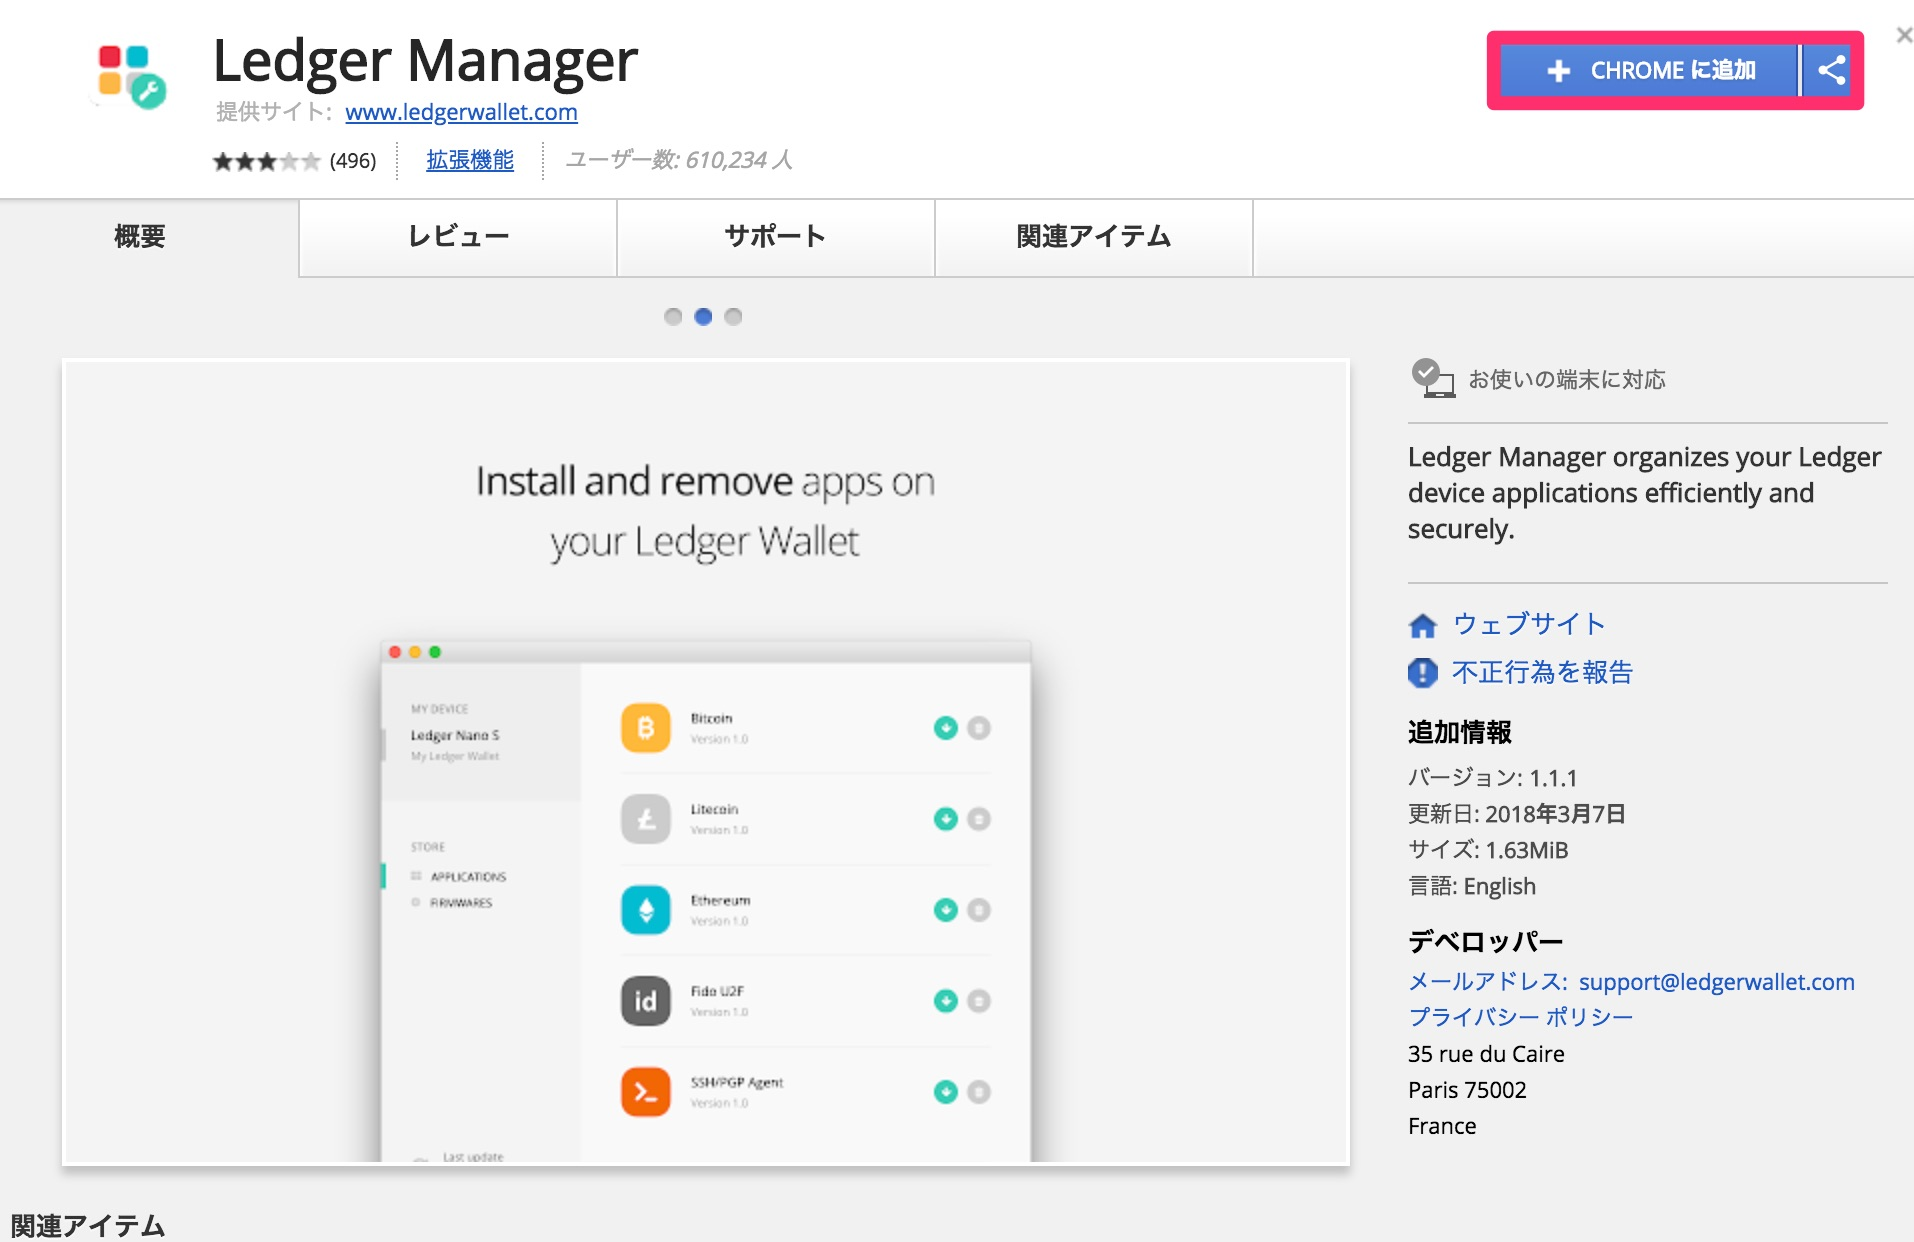 Ledger Manager